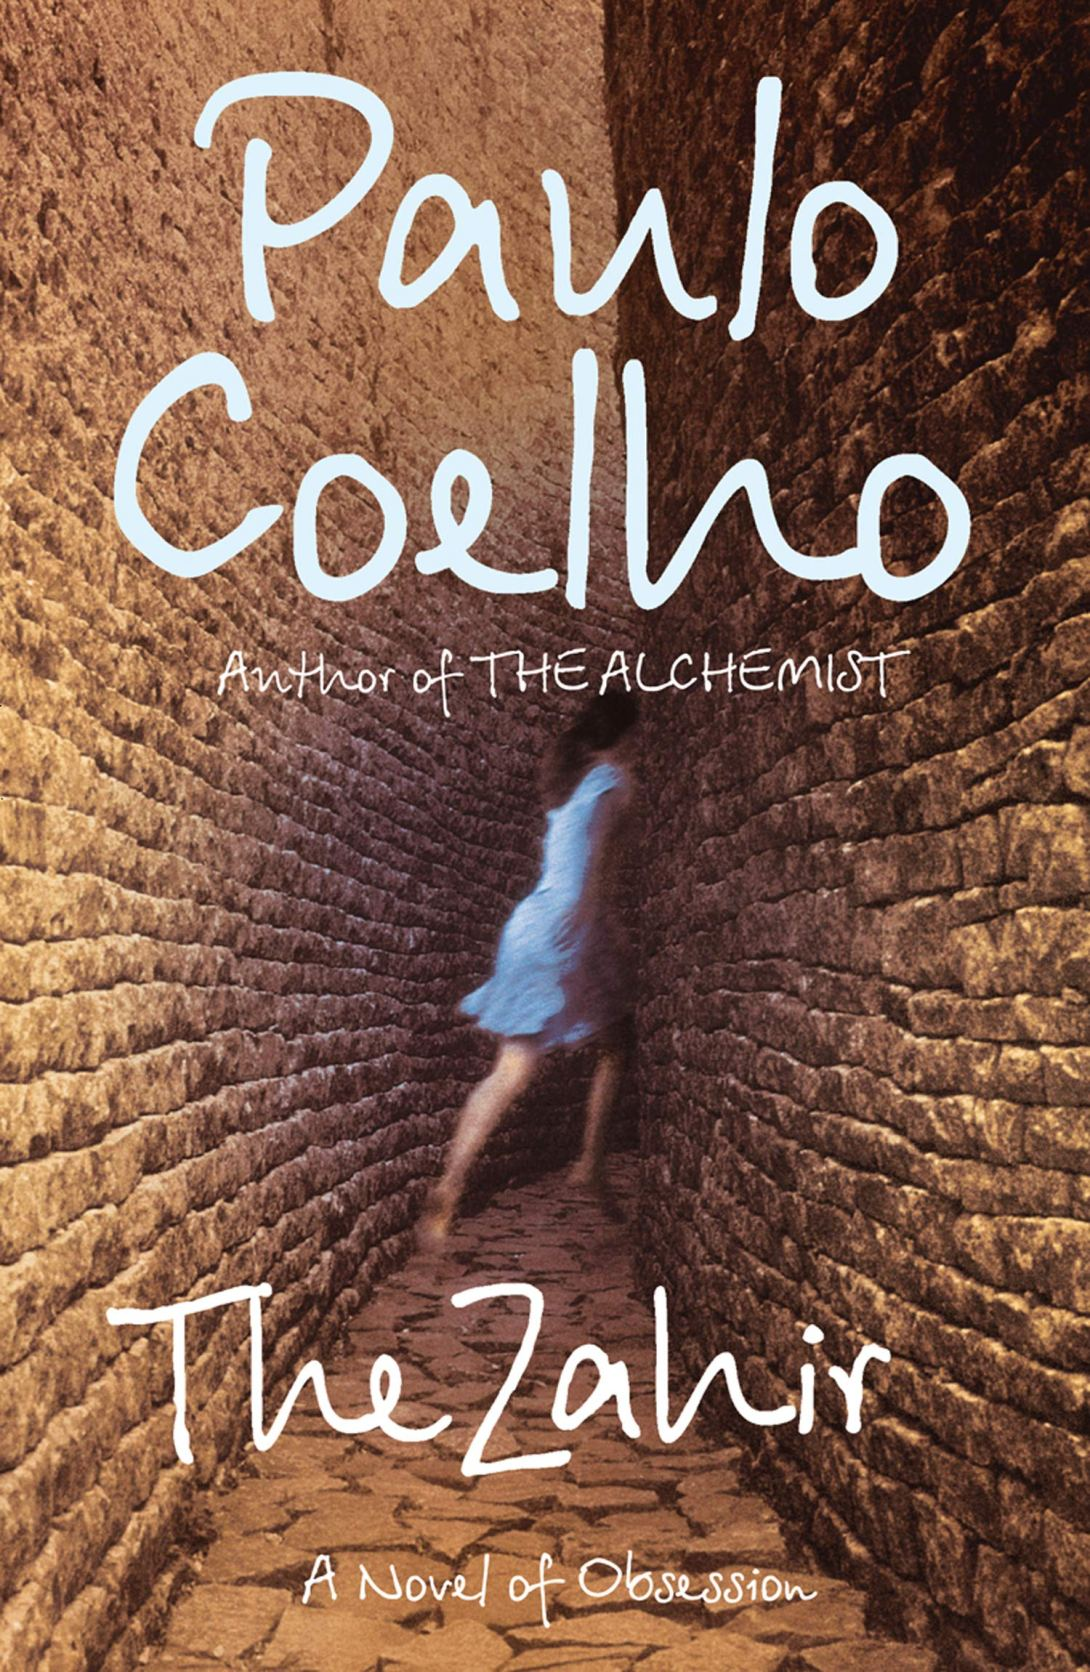 The Zahir: A Novel of Obsession by Paulo Coelho - Laffaz